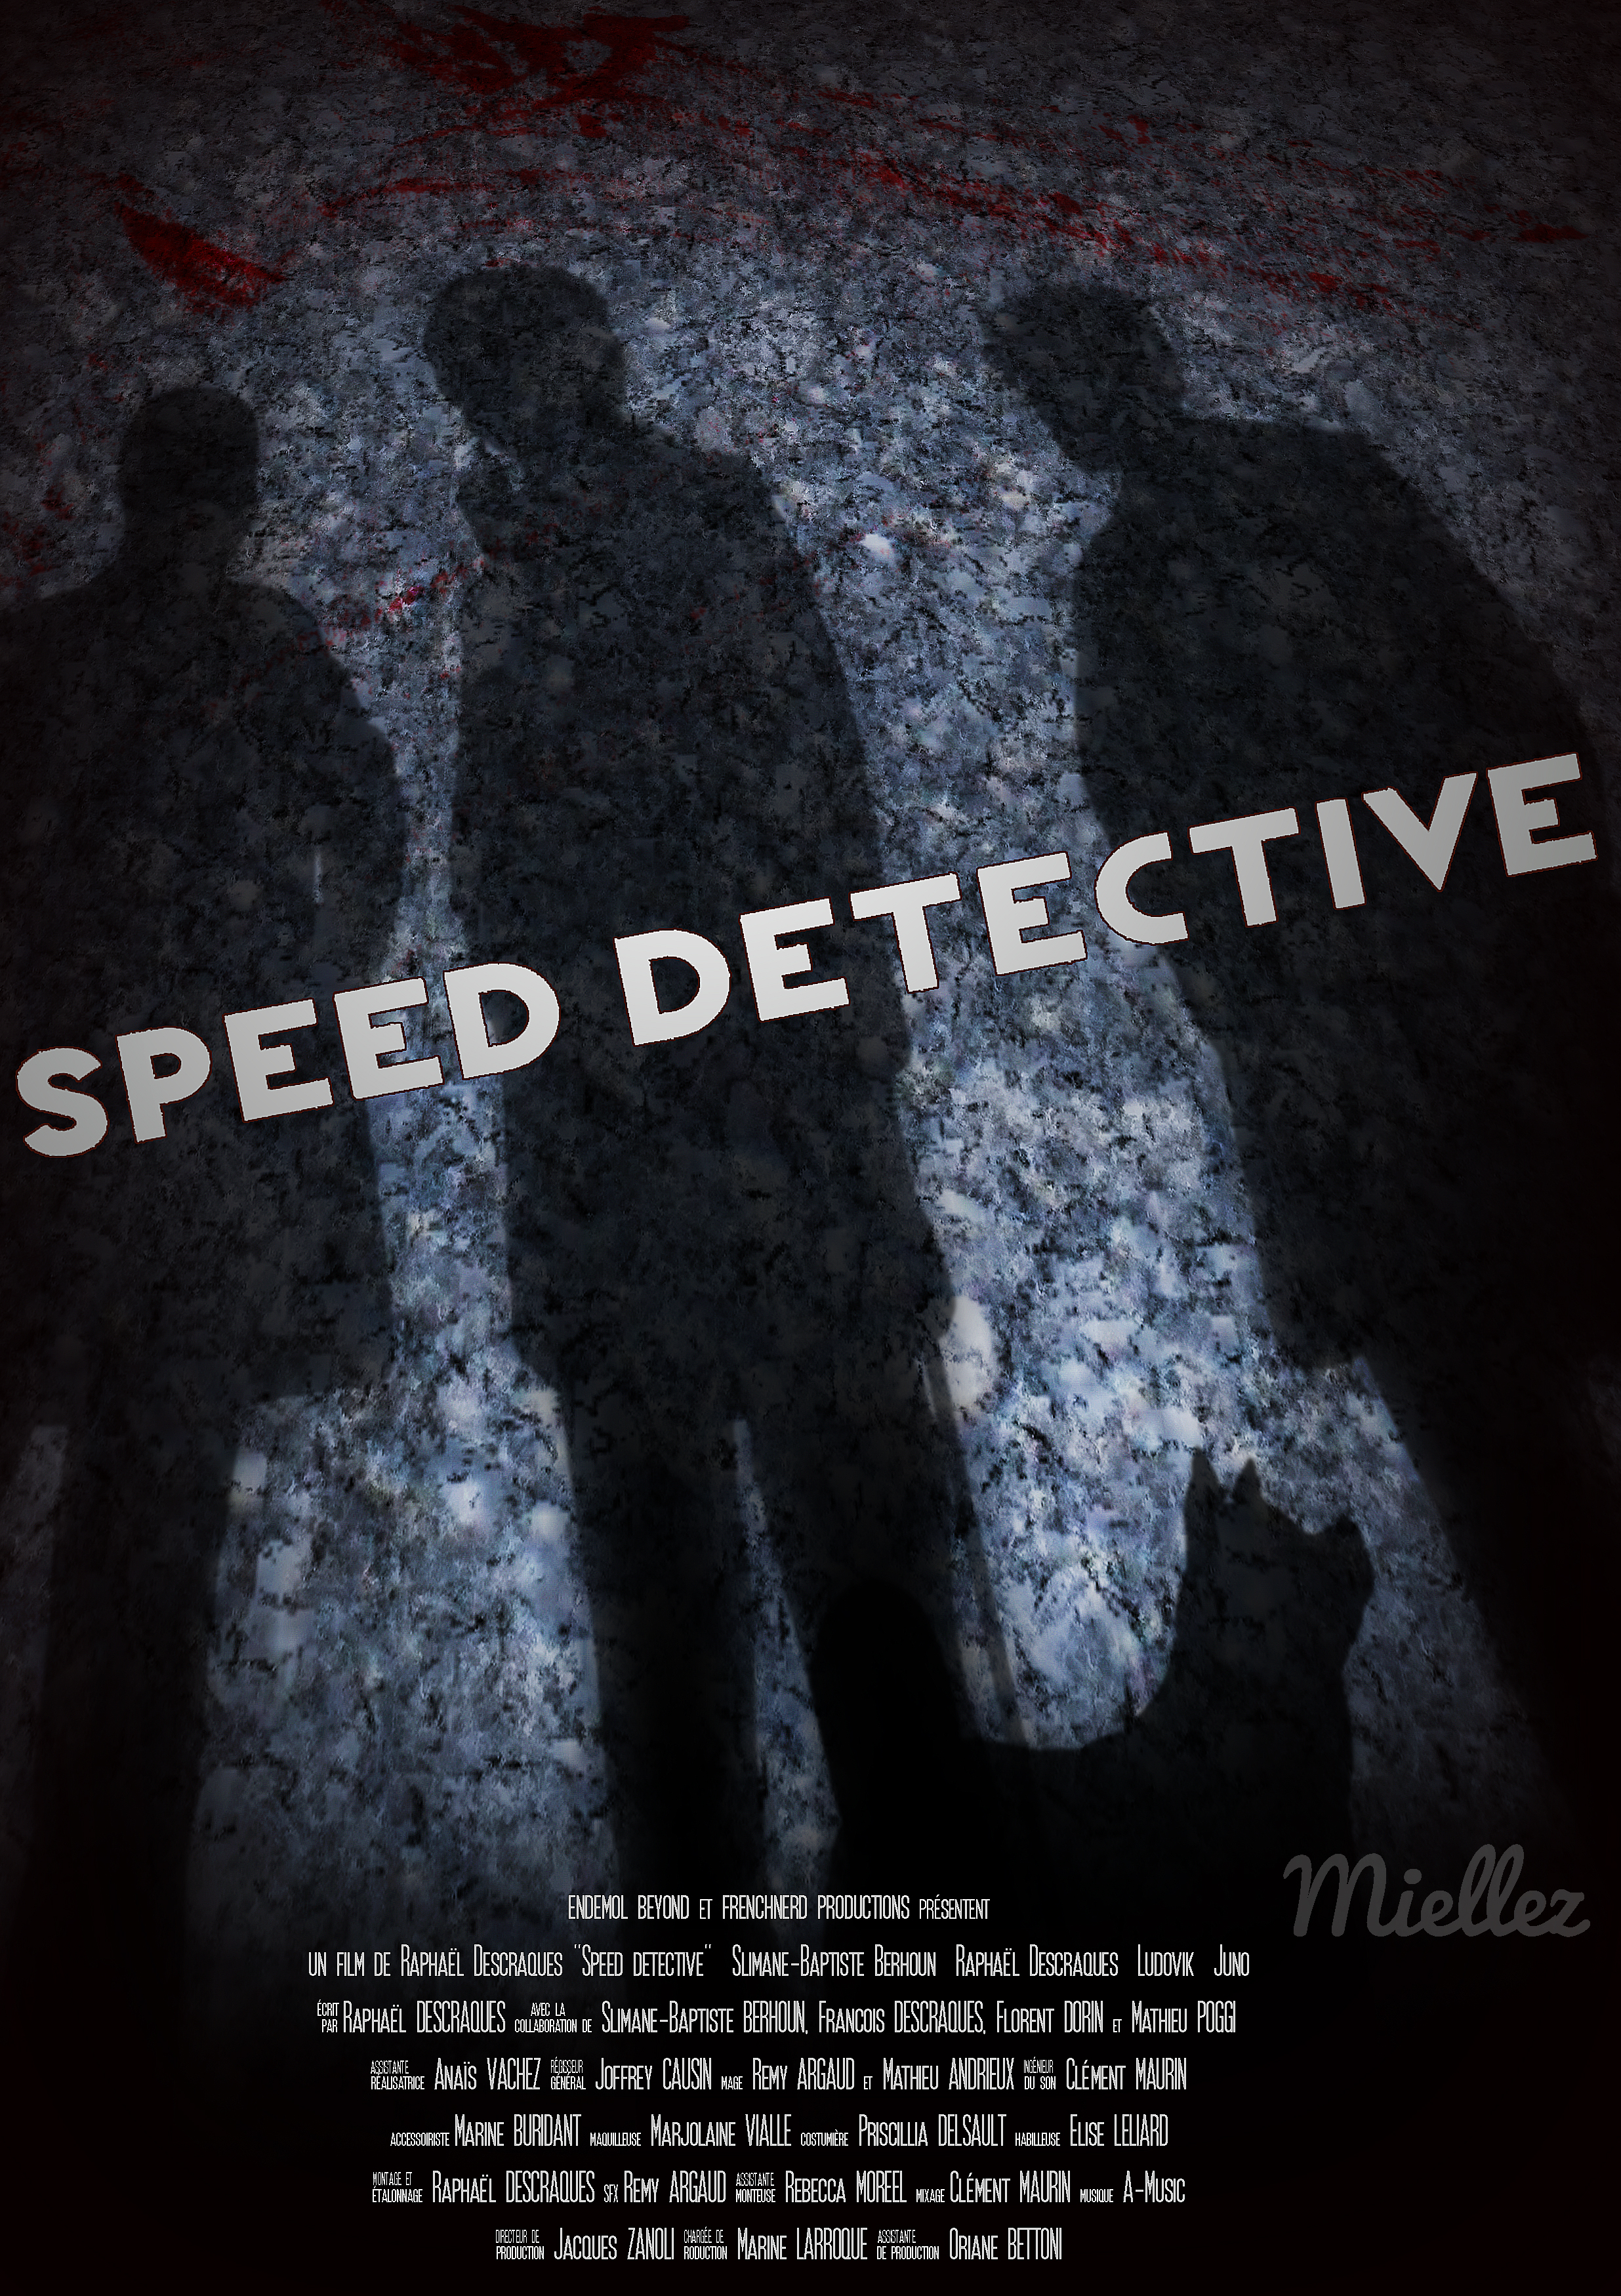 [Infographie] Posters Frenchnerd 1463077309-speeddetective